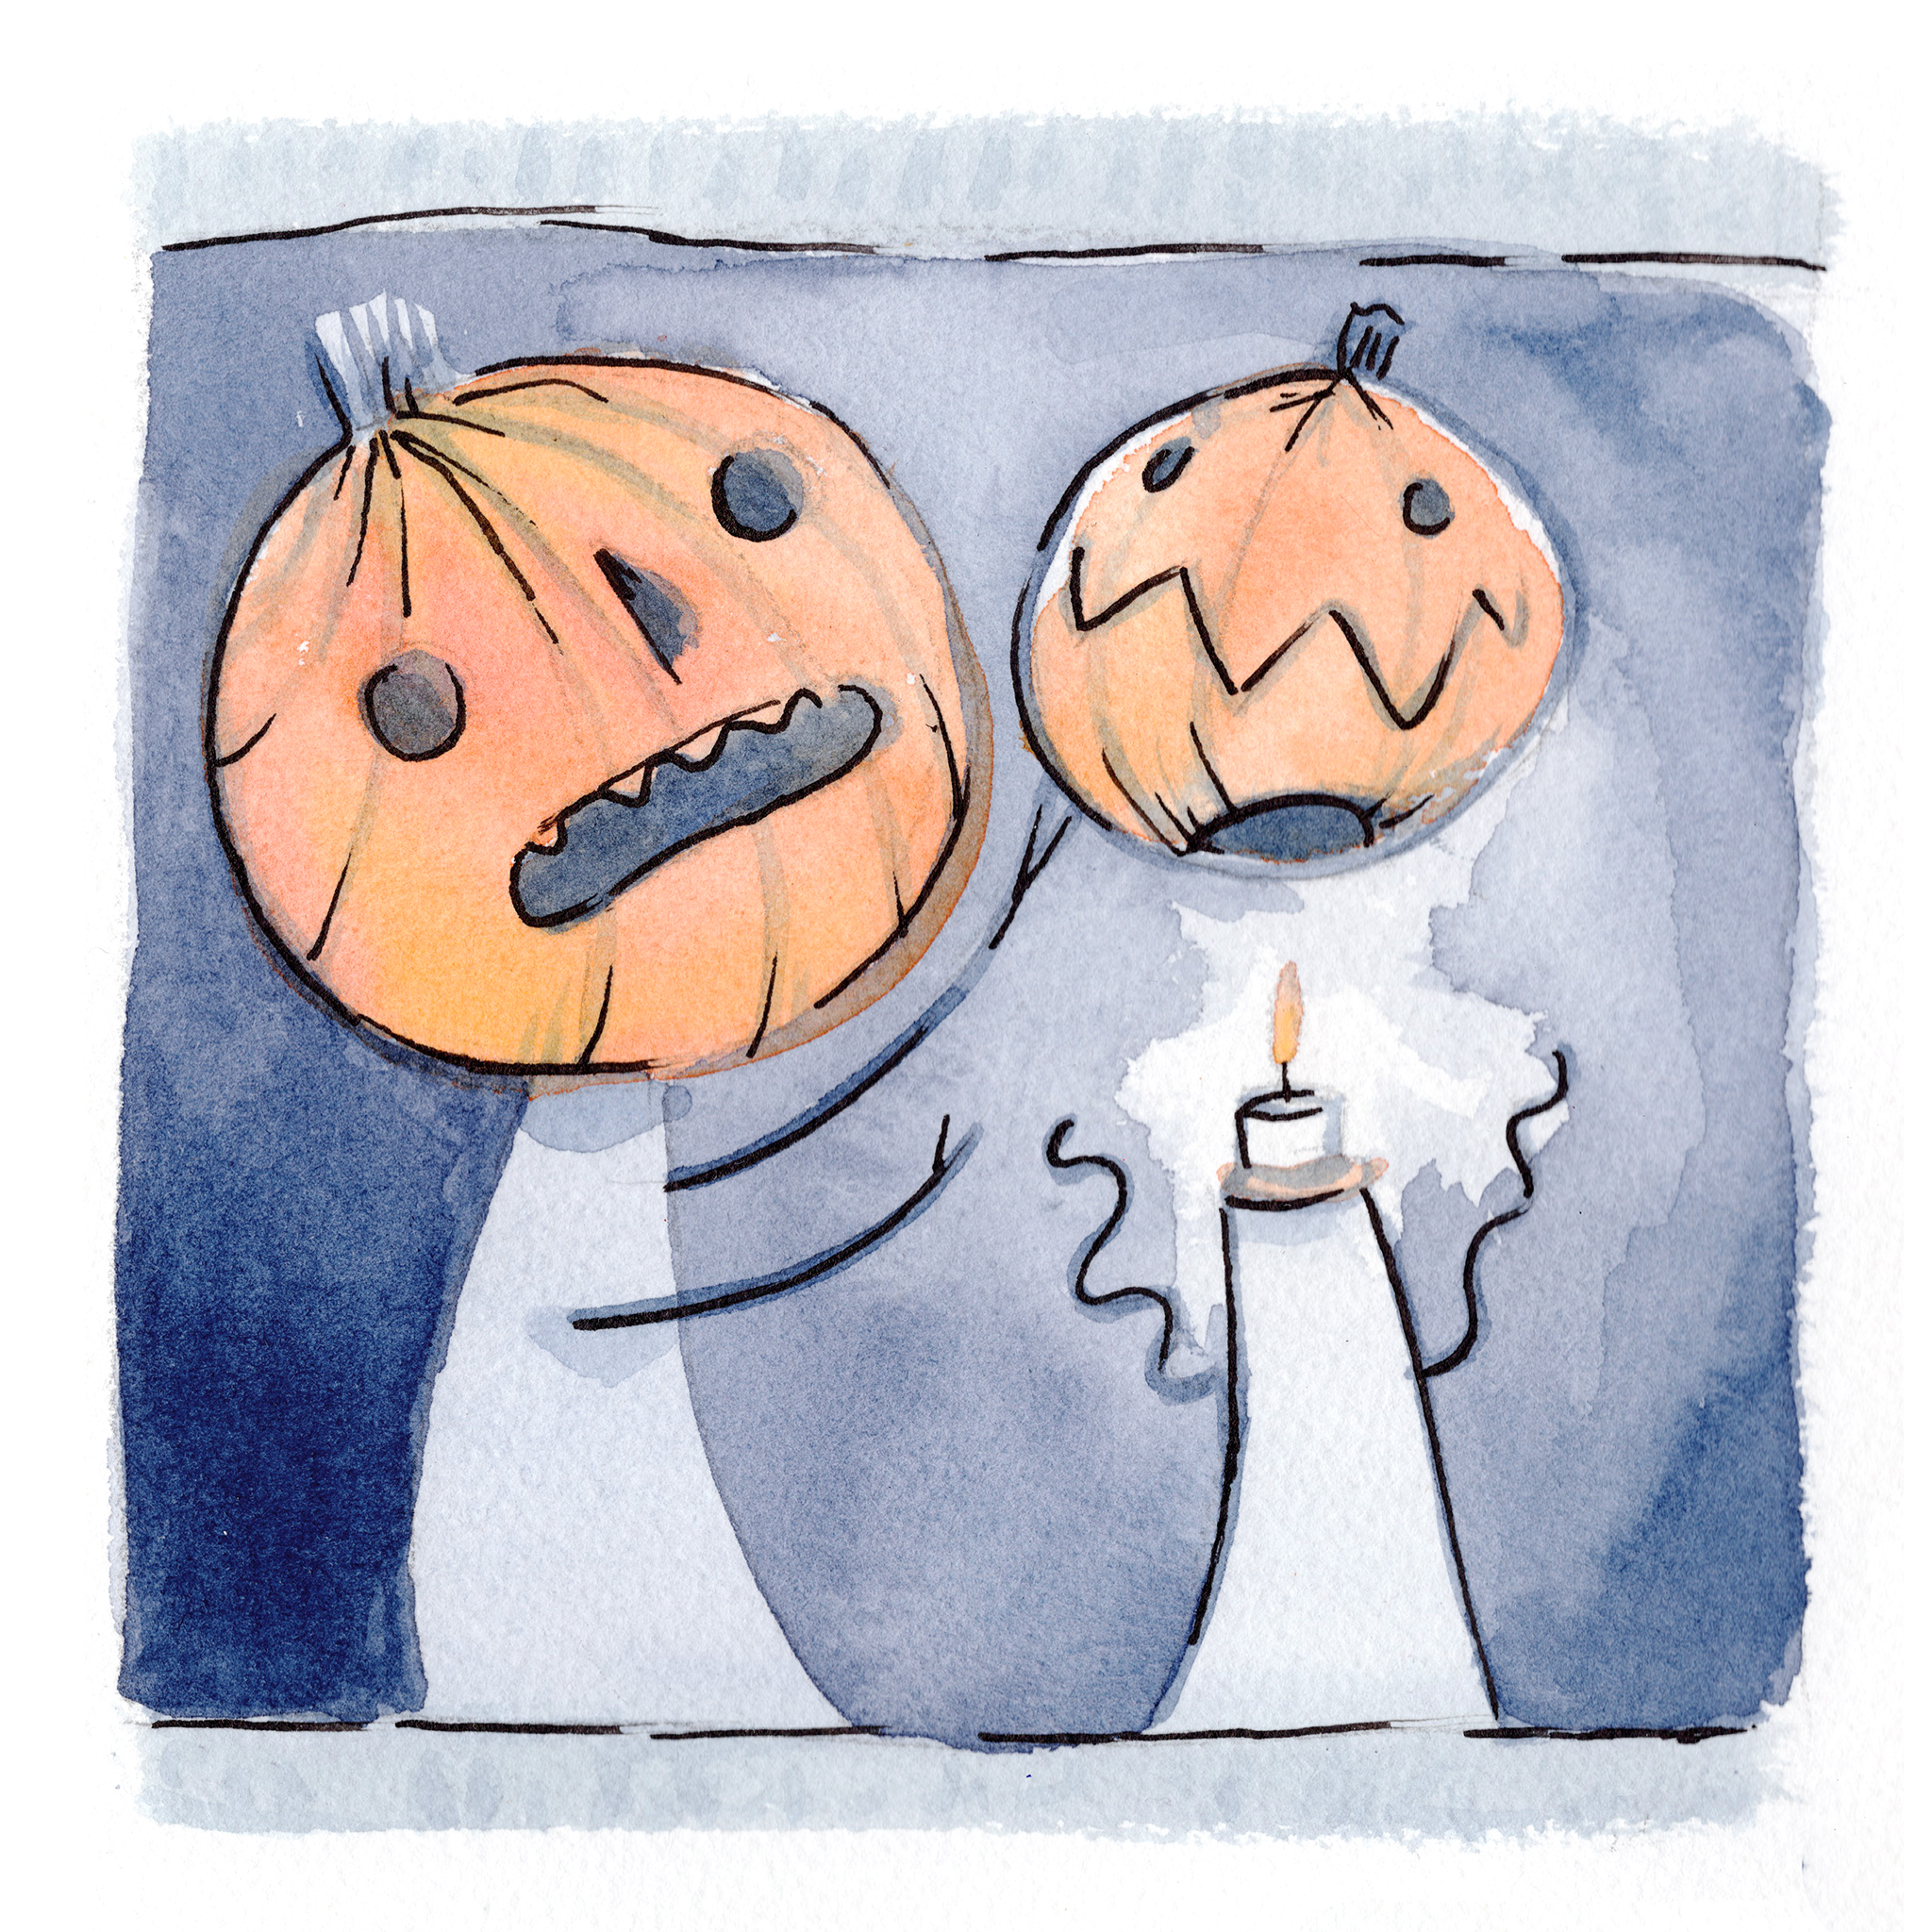 Watercolor pumpkin characters, one revealing the other has only a candle under his jack-o-lantern head.